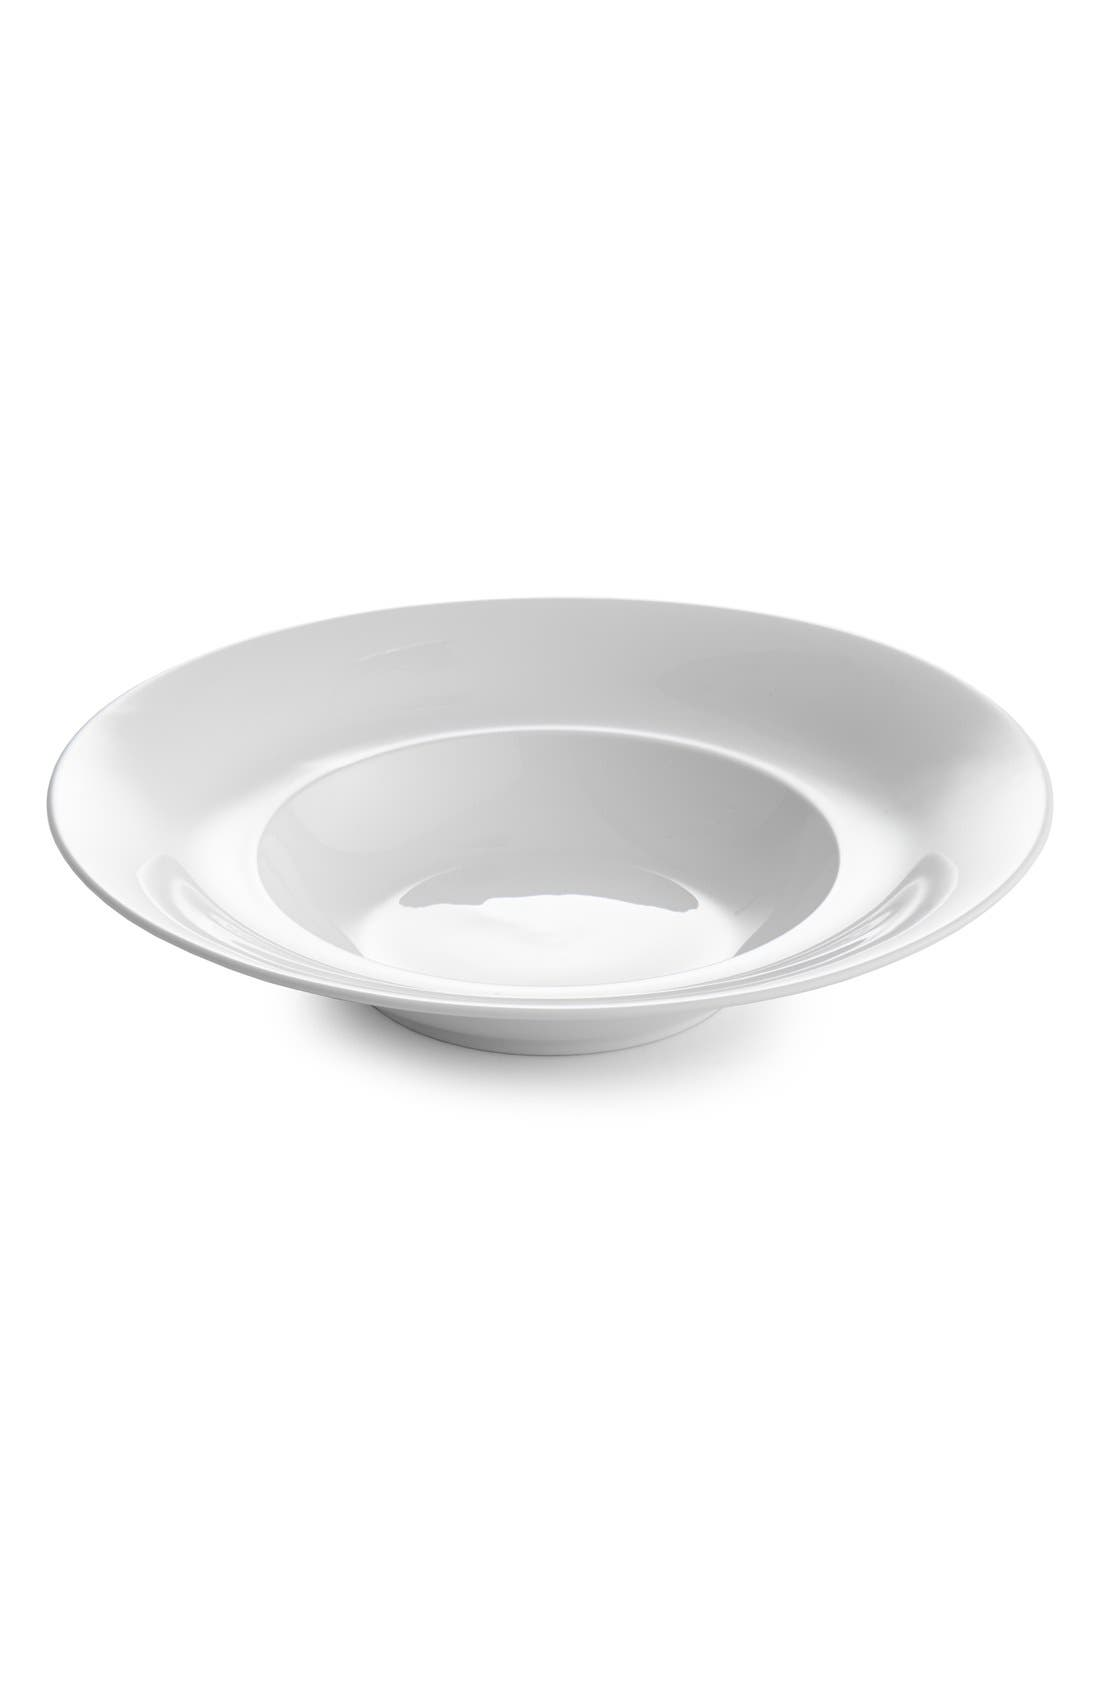 Alternate Image 1 Selected - Nambé 'Skye Collection' Bone China Serving Bowl